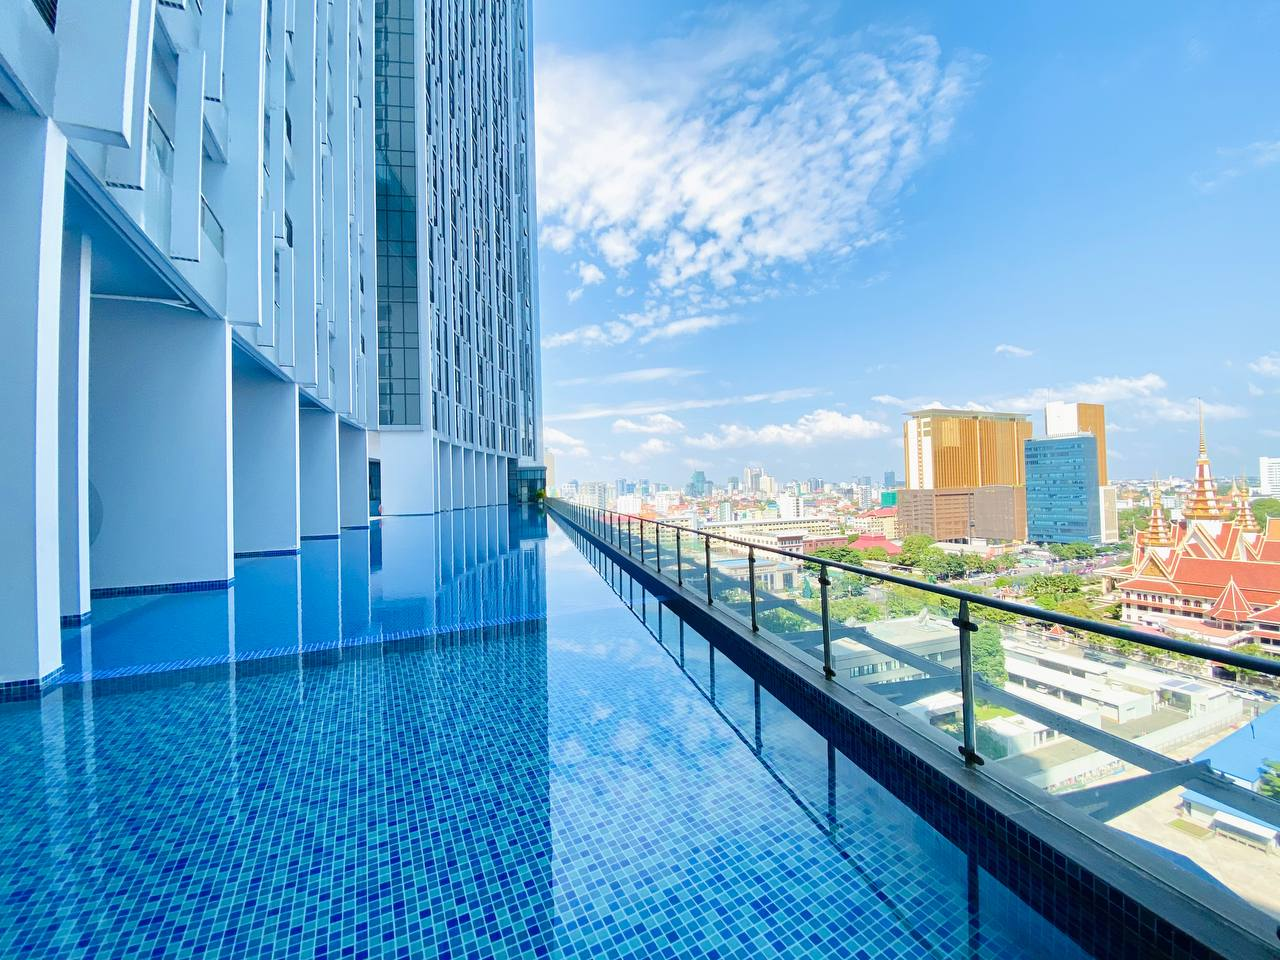 4 Bedrooms , Apartment for rent in phnom Penh